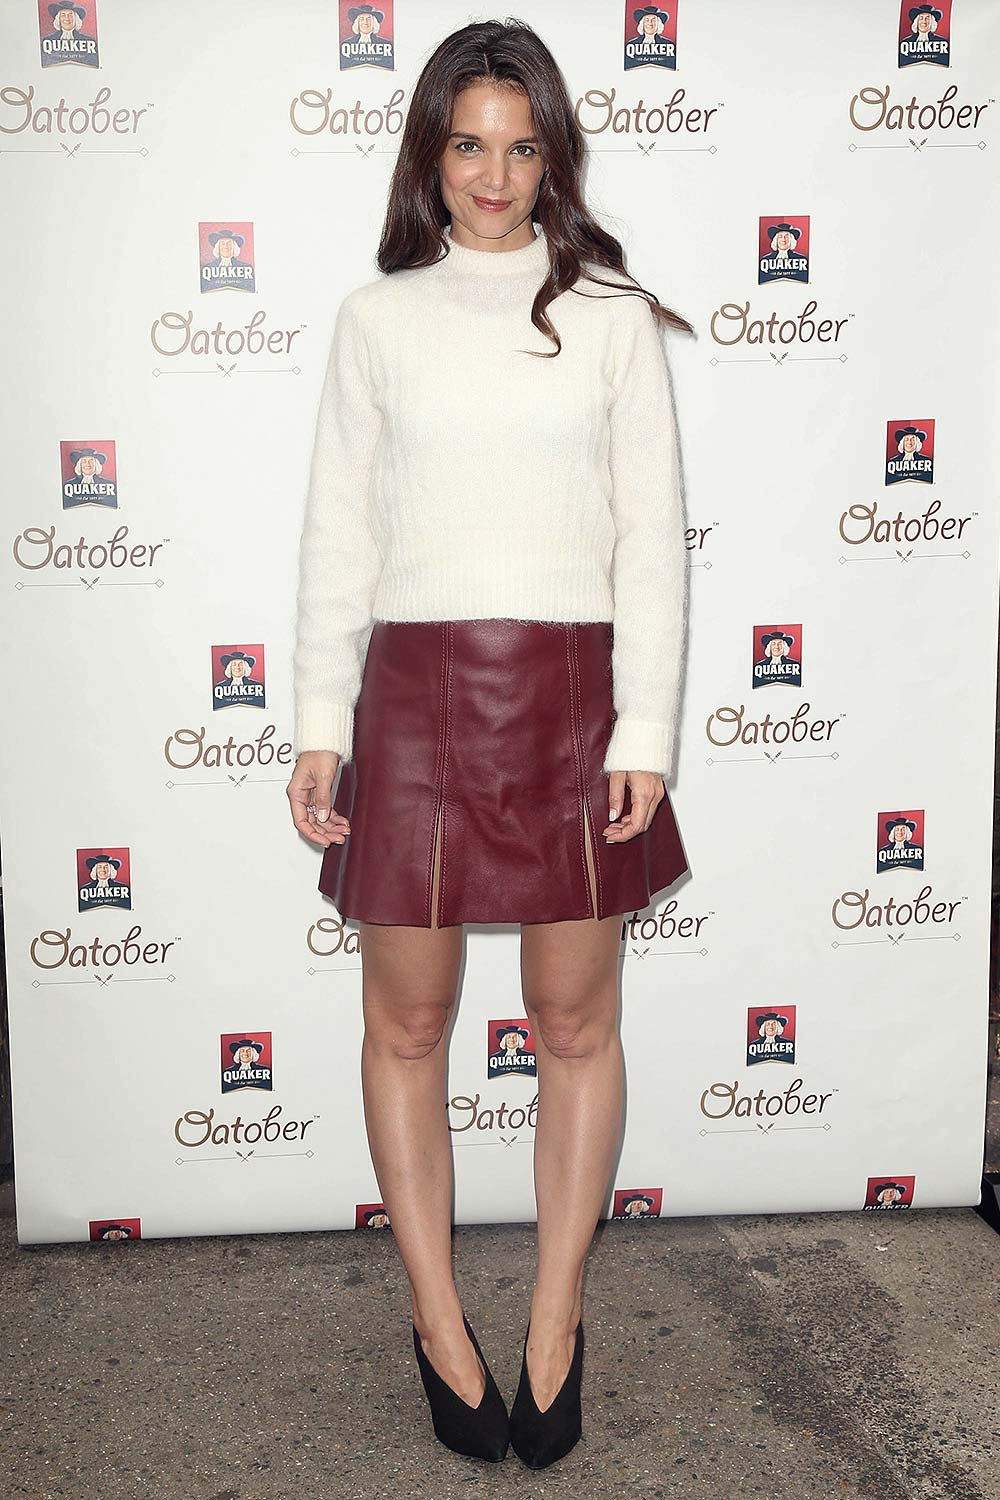 Katie Holmes at Quaker Oats Oatober Launch